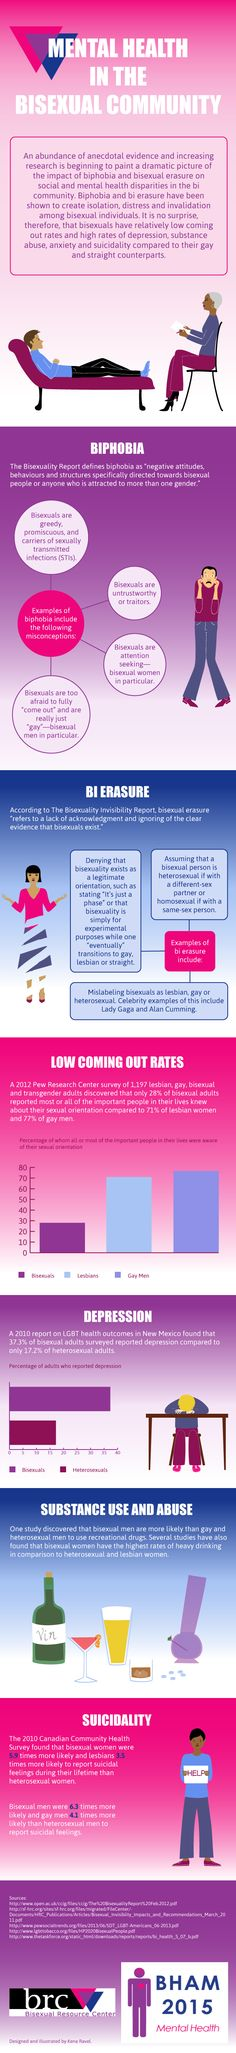 Mental Health in the Bisexual Community. Designed and illustrated by Kena Ravel. #BiHealthMonth 2015